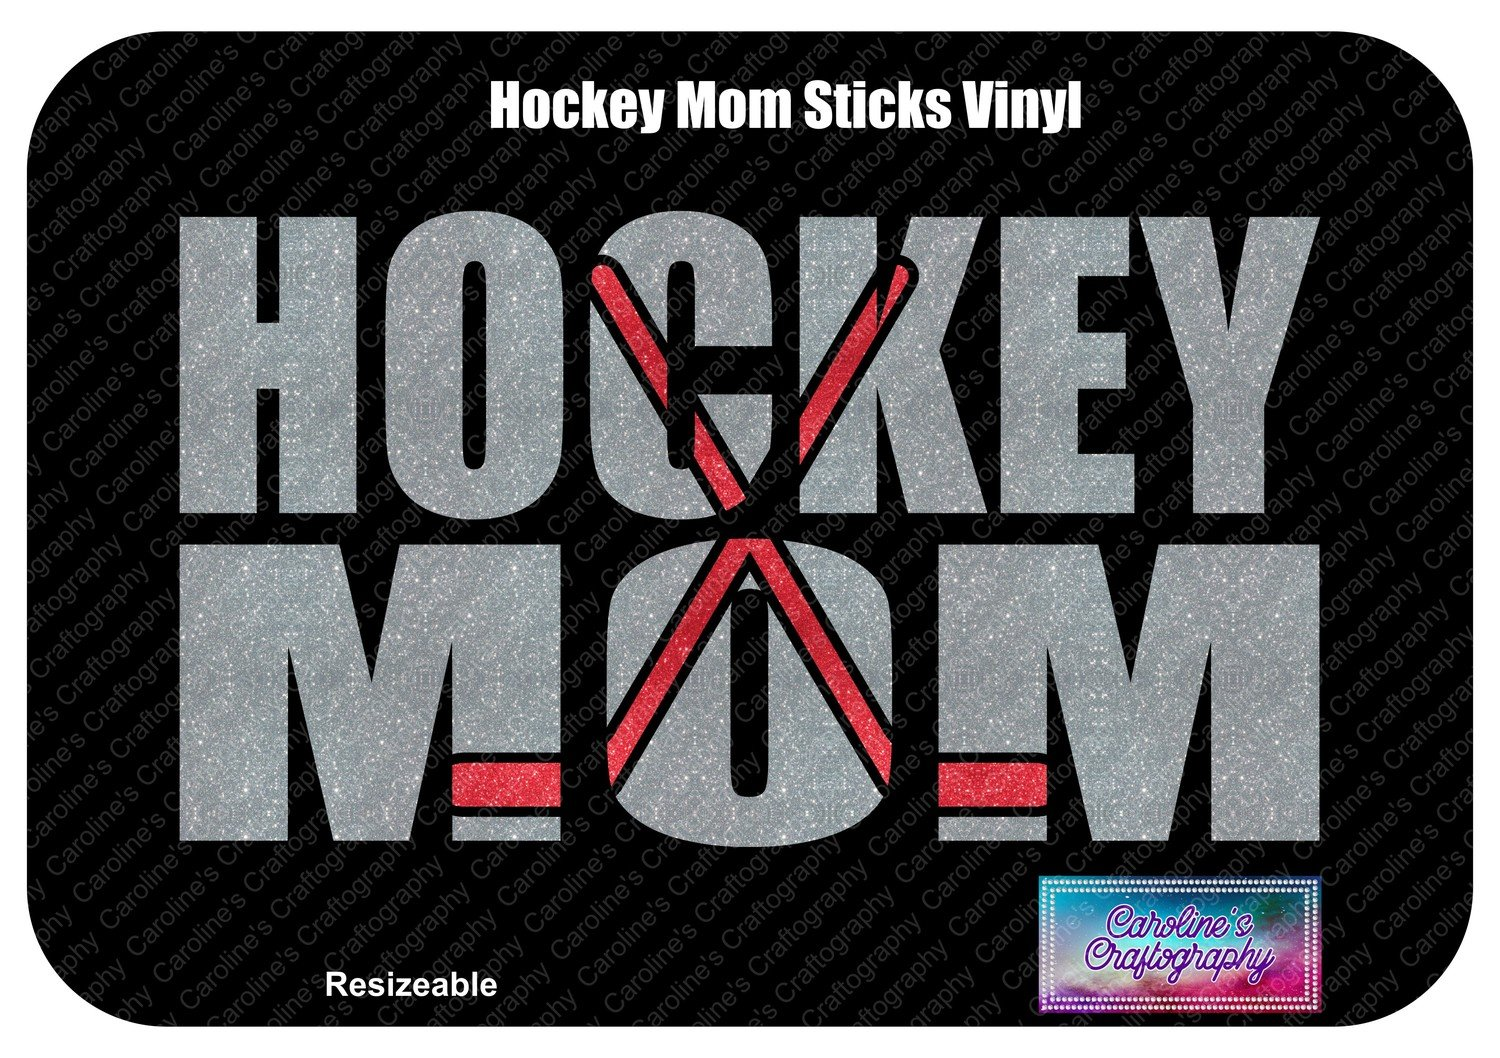 Hockey Mom Sticks Vinyl